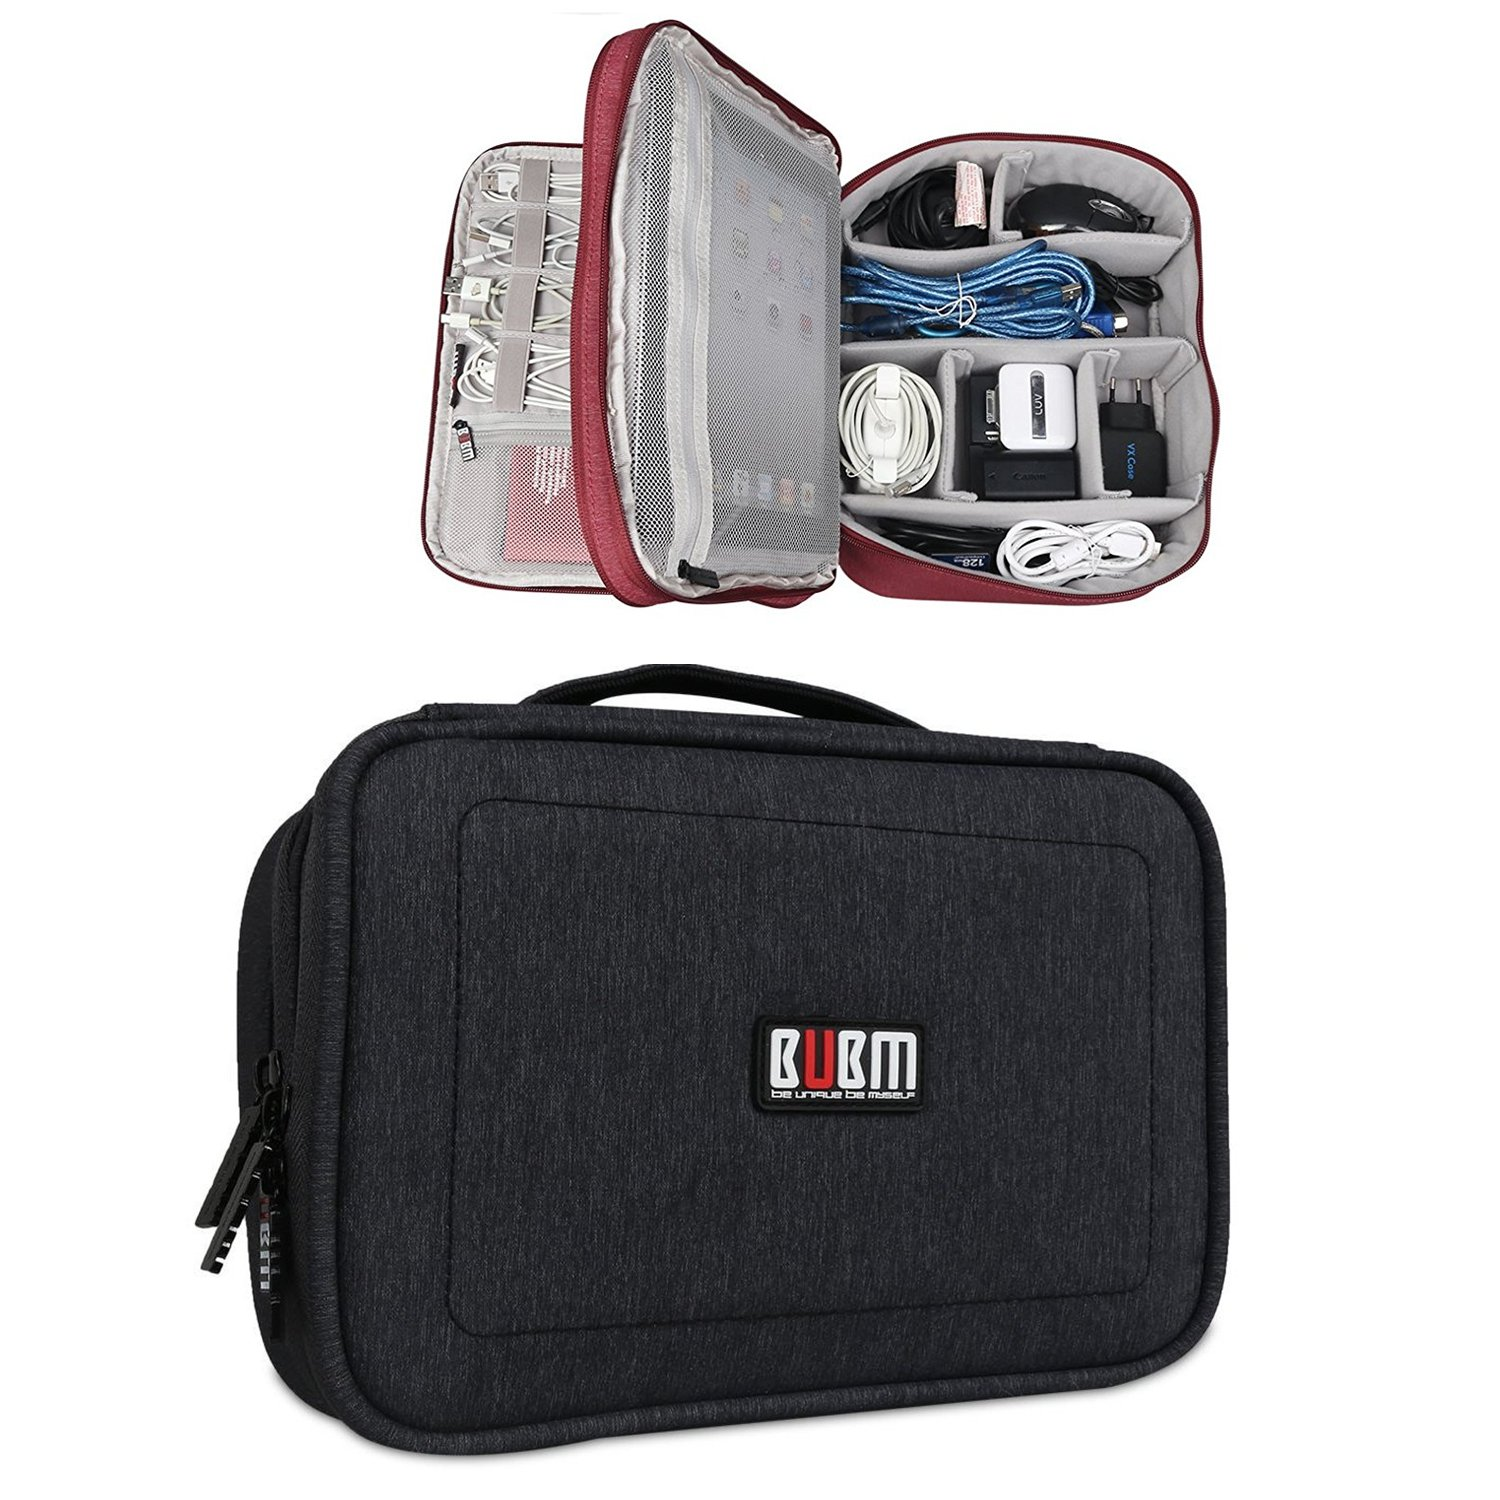 BUBM Multi-function Case Waterproof Handbag Travel Gear Organizer Electronics Accessories Bag Phone Charger Cable Sleeve Pouch (Black,Large)